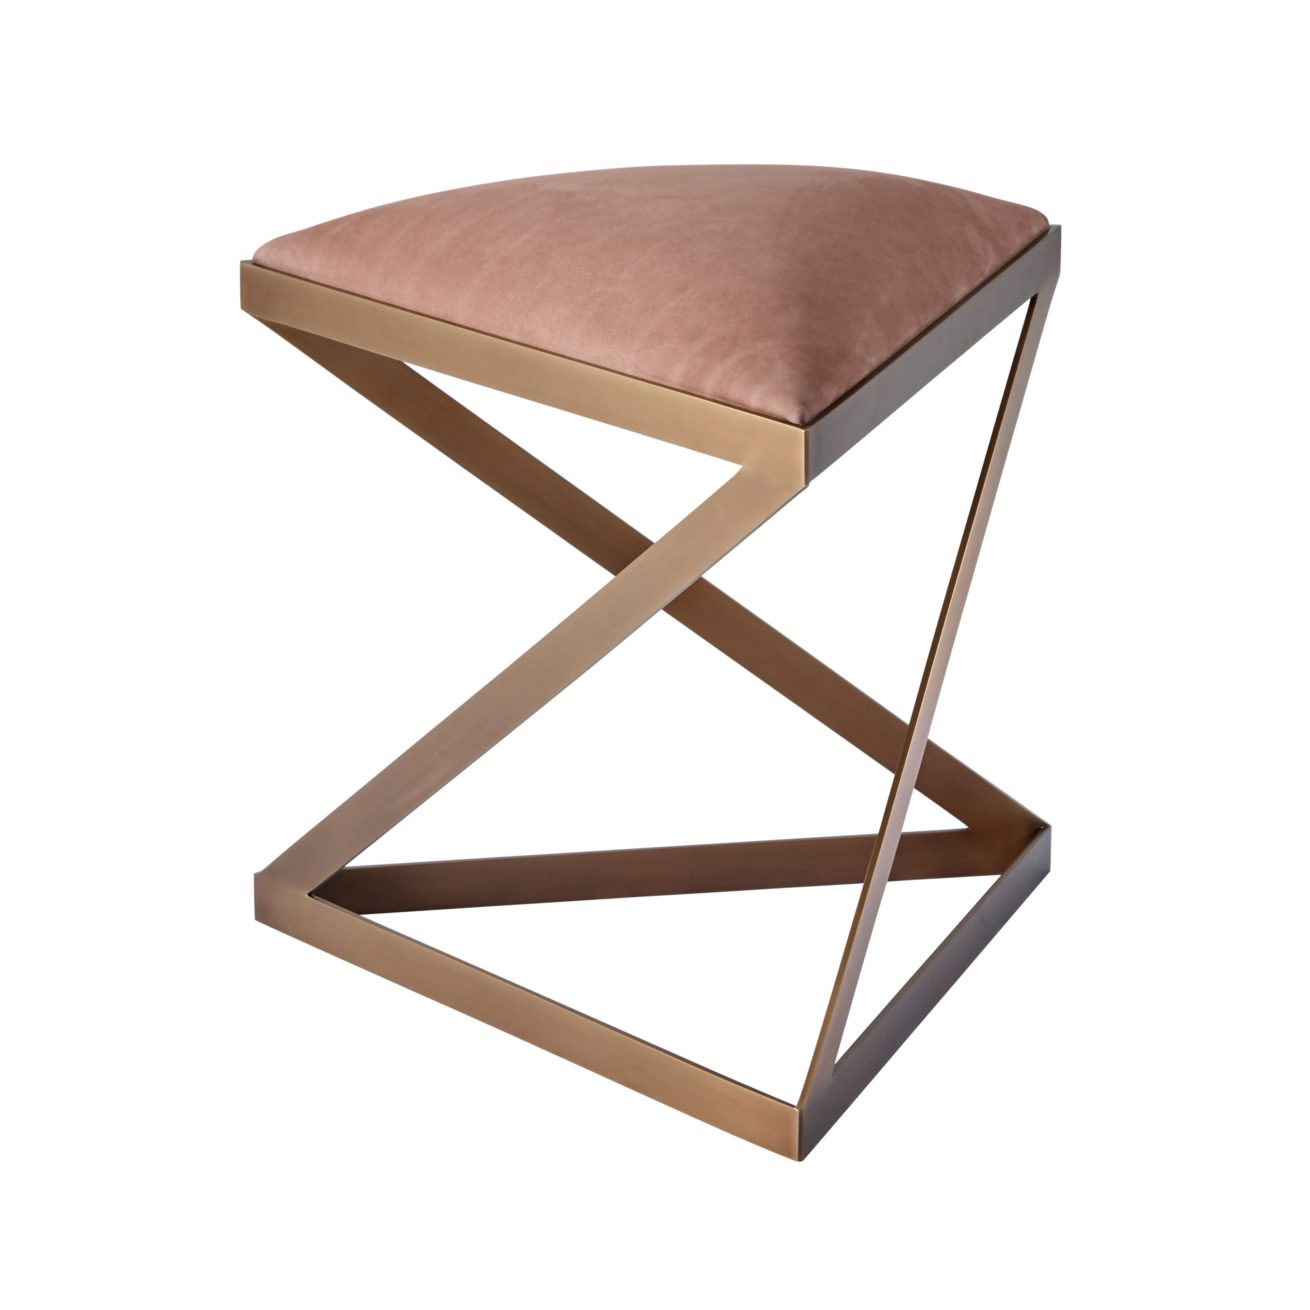 CHAIRS/ARMCHAIRS: chairs, dining chairs, lounge chairs, living room chairs, armchairs, living room armchairs, wooden chair, metal chair, wooden armchair, metal armchair